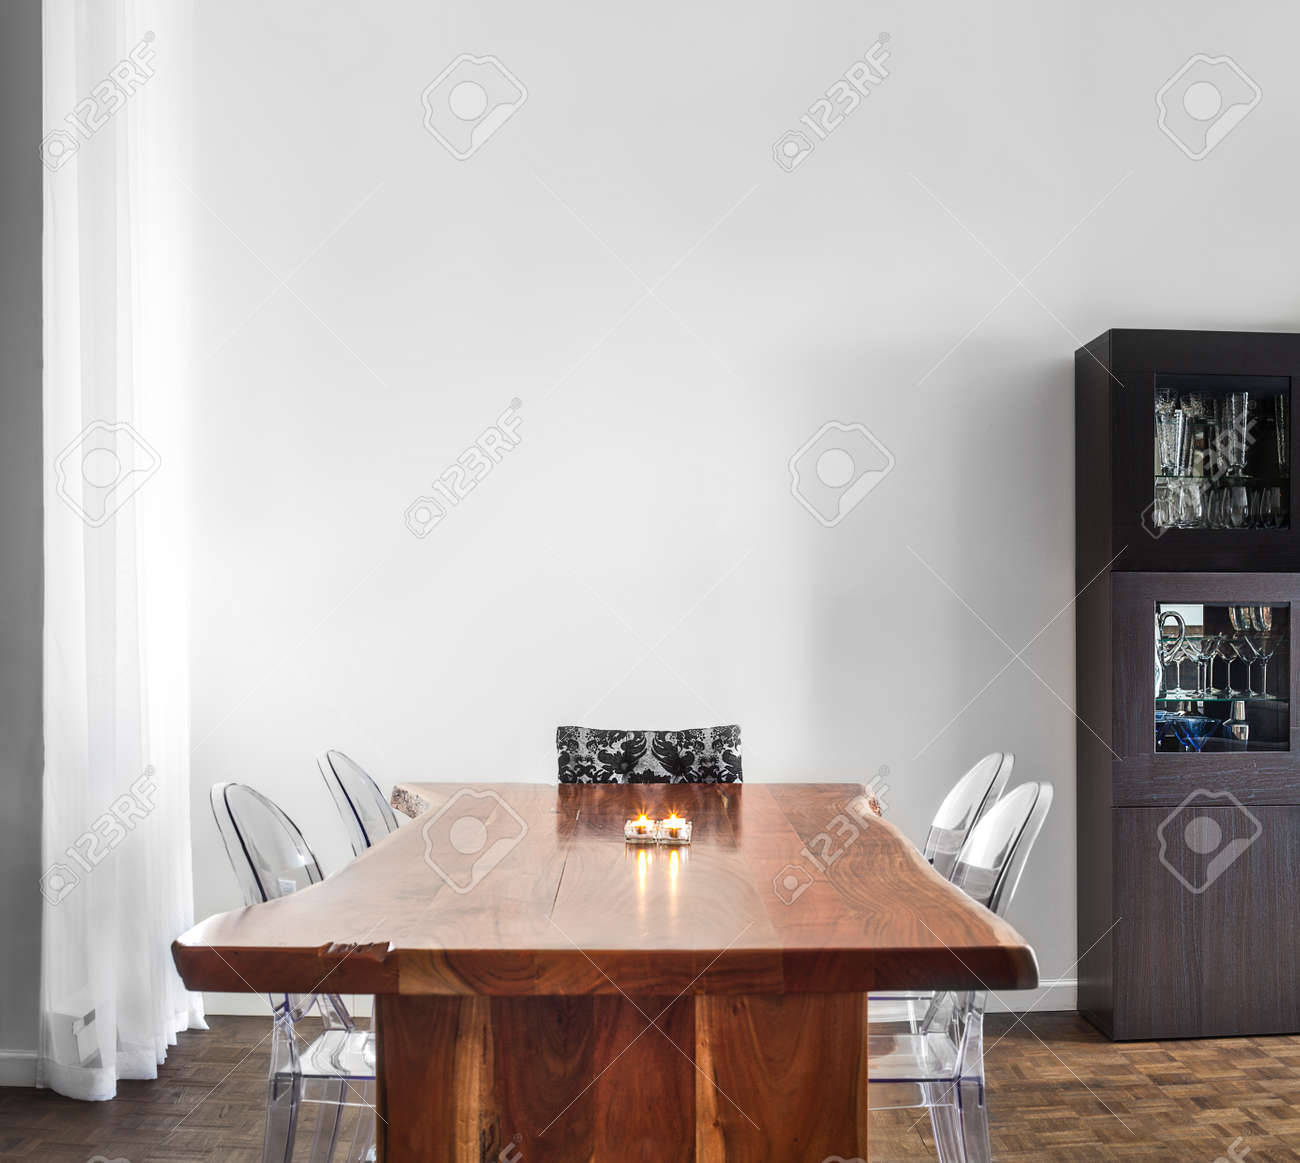 Mesa Moderno Y Contemporáneo Comedor Y Decoraciones Con Pared En ...